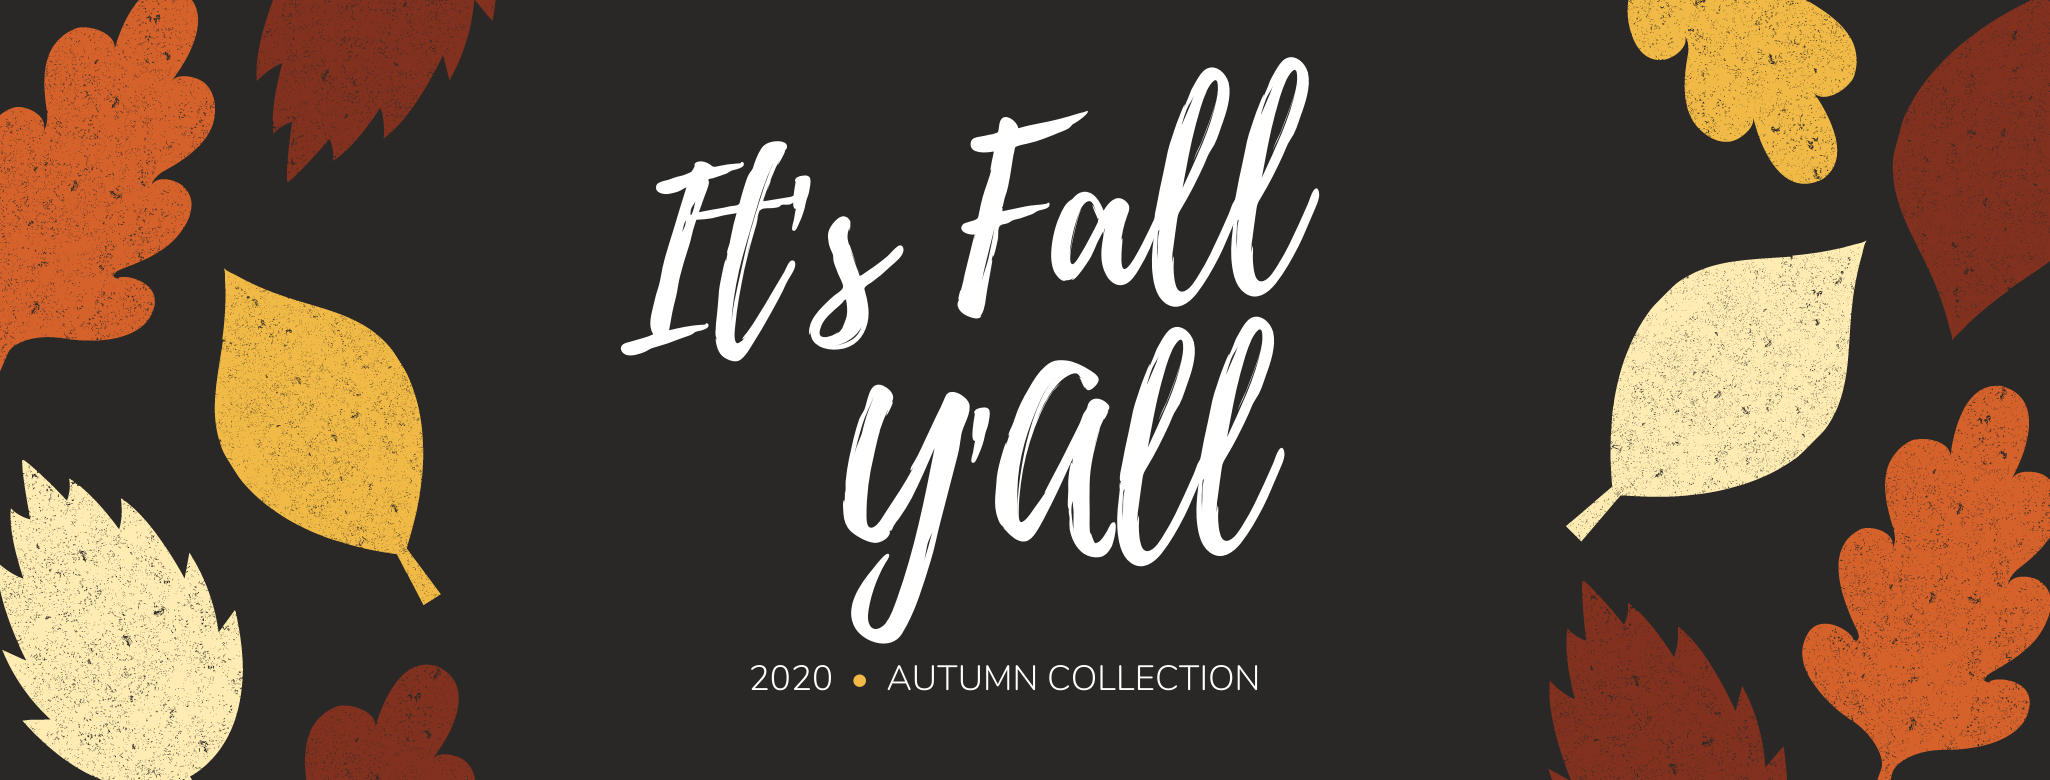 bad-tags-autumn-collection.png